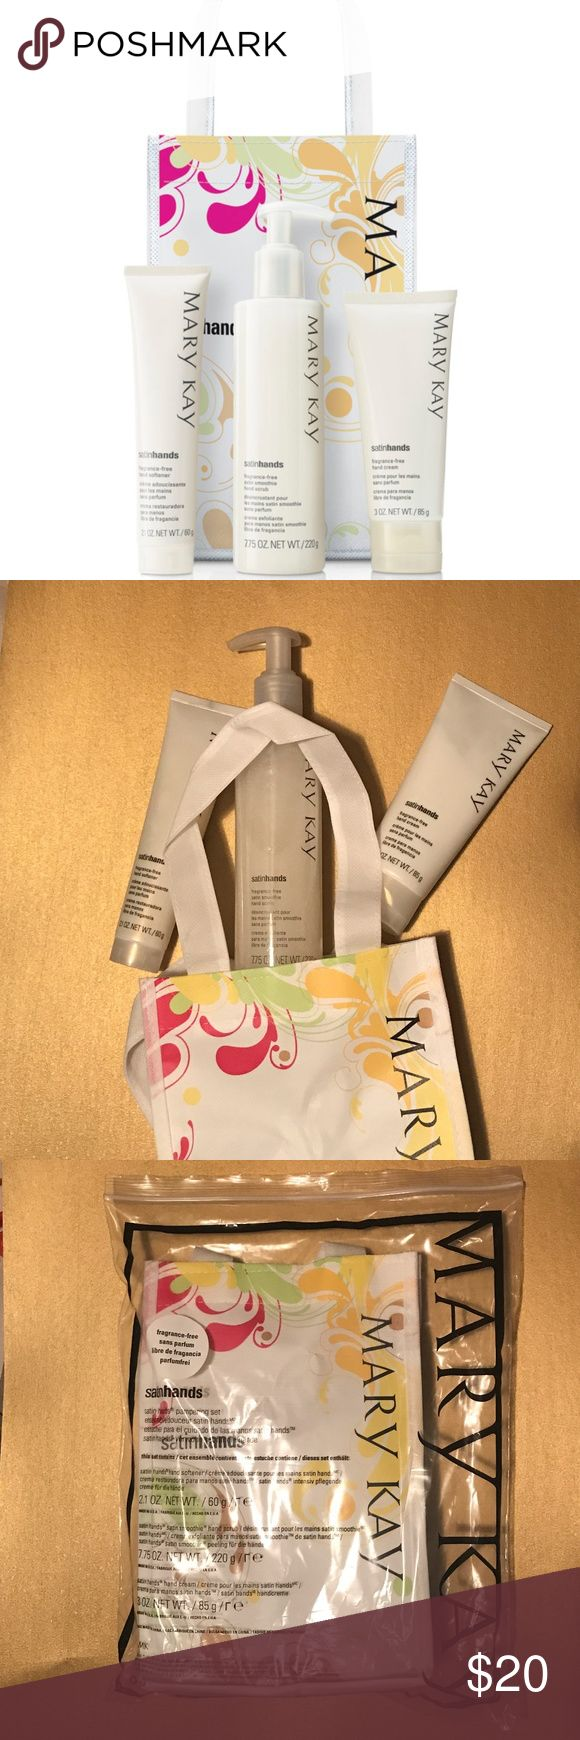 Fragrance-Free Satin Hands Pampering Set M A R Y   K A Y  |  Fragrance-Free Satin Hands Pampering Set  Fragrance-Free Satin Hands Hand Softener 2.1 oz. Fragrance-Free Satin Hands Satin Smoothie® Hand Scrub 7.75 oz. Fragrance-Free Satin Hands Hand Cream 3 oz.  Fragrance-Free Satin Hands® Pampering Set is an easy, three-step system that helps keep hands feeling renewed, soothed and pampered.  •	Dermatologist-tested. •	Clinically tested for skin irritancy and allergy. •	Makes a great gift.  M A…